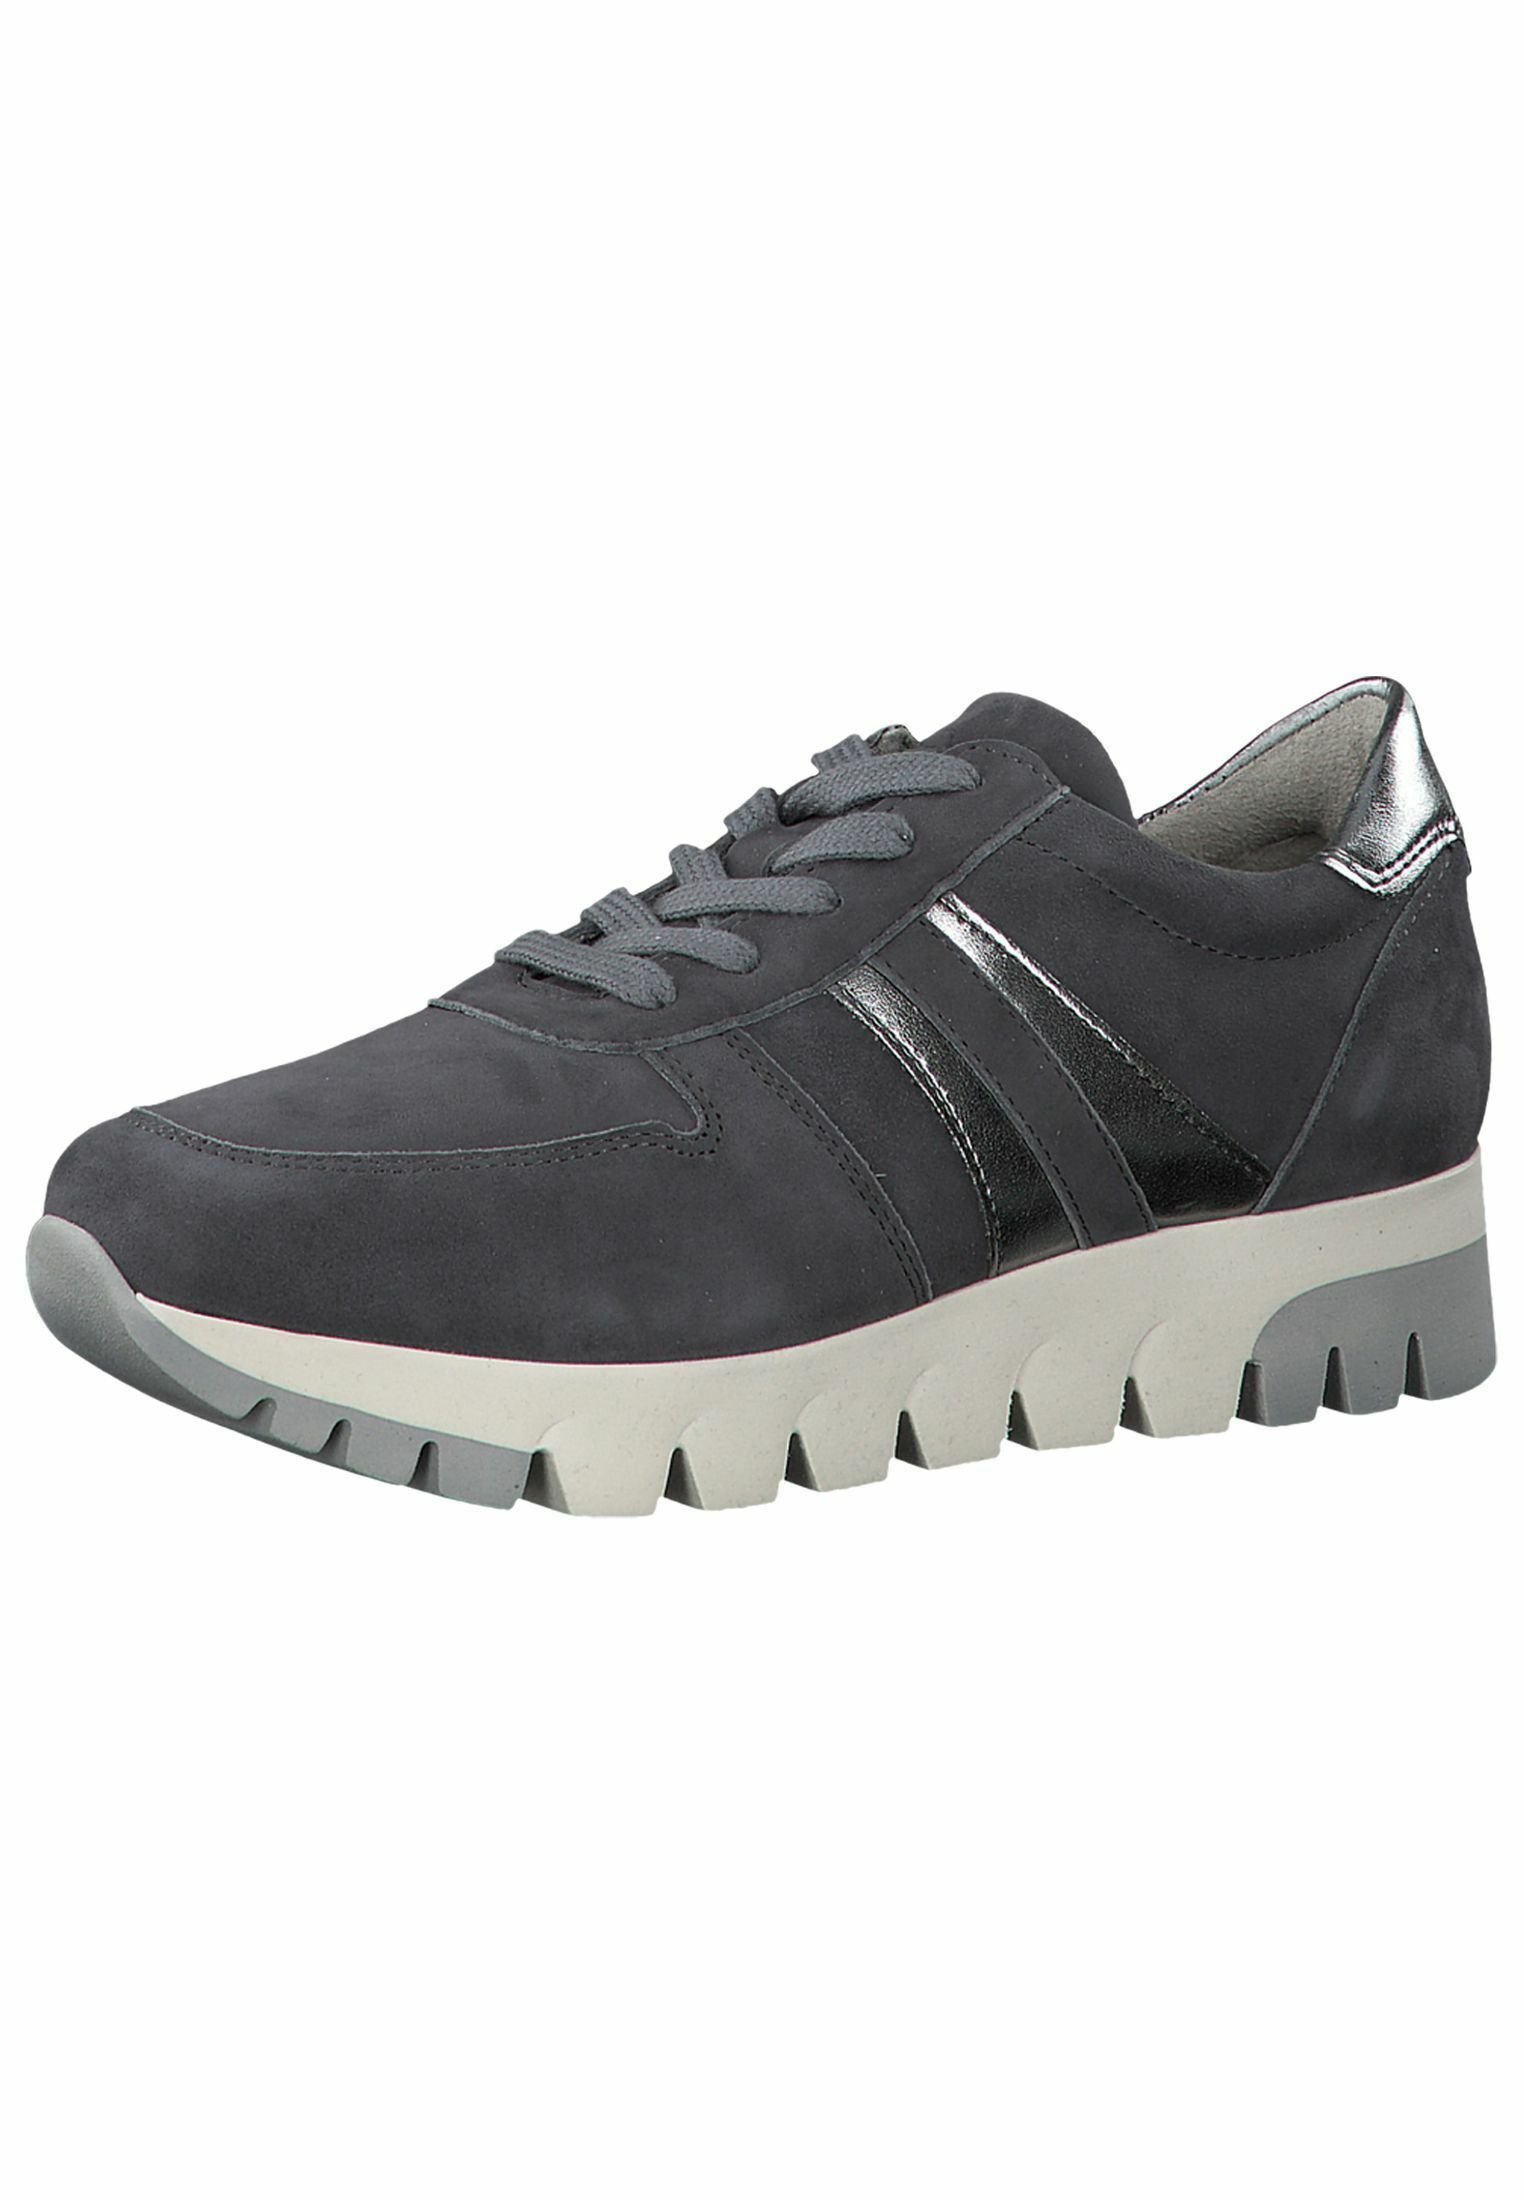 Tamaris LACE UP Sneaker low grey/pewter/grau